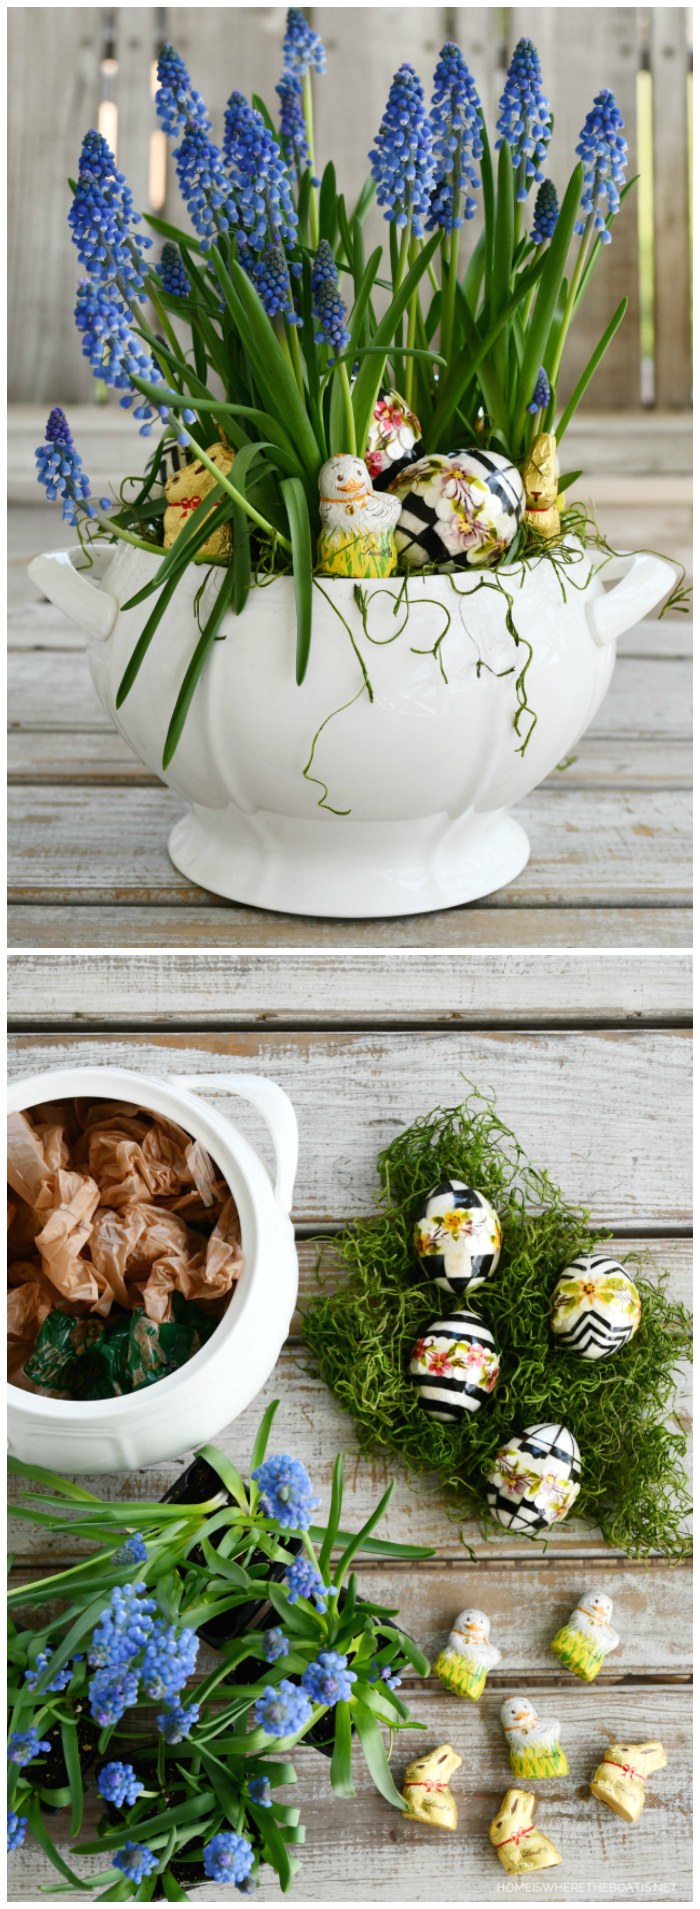 Easter centerpiece with muscari, eggs and Lindt mini chocolate bunnies and chicks | ©homeiswheretheboatis.net